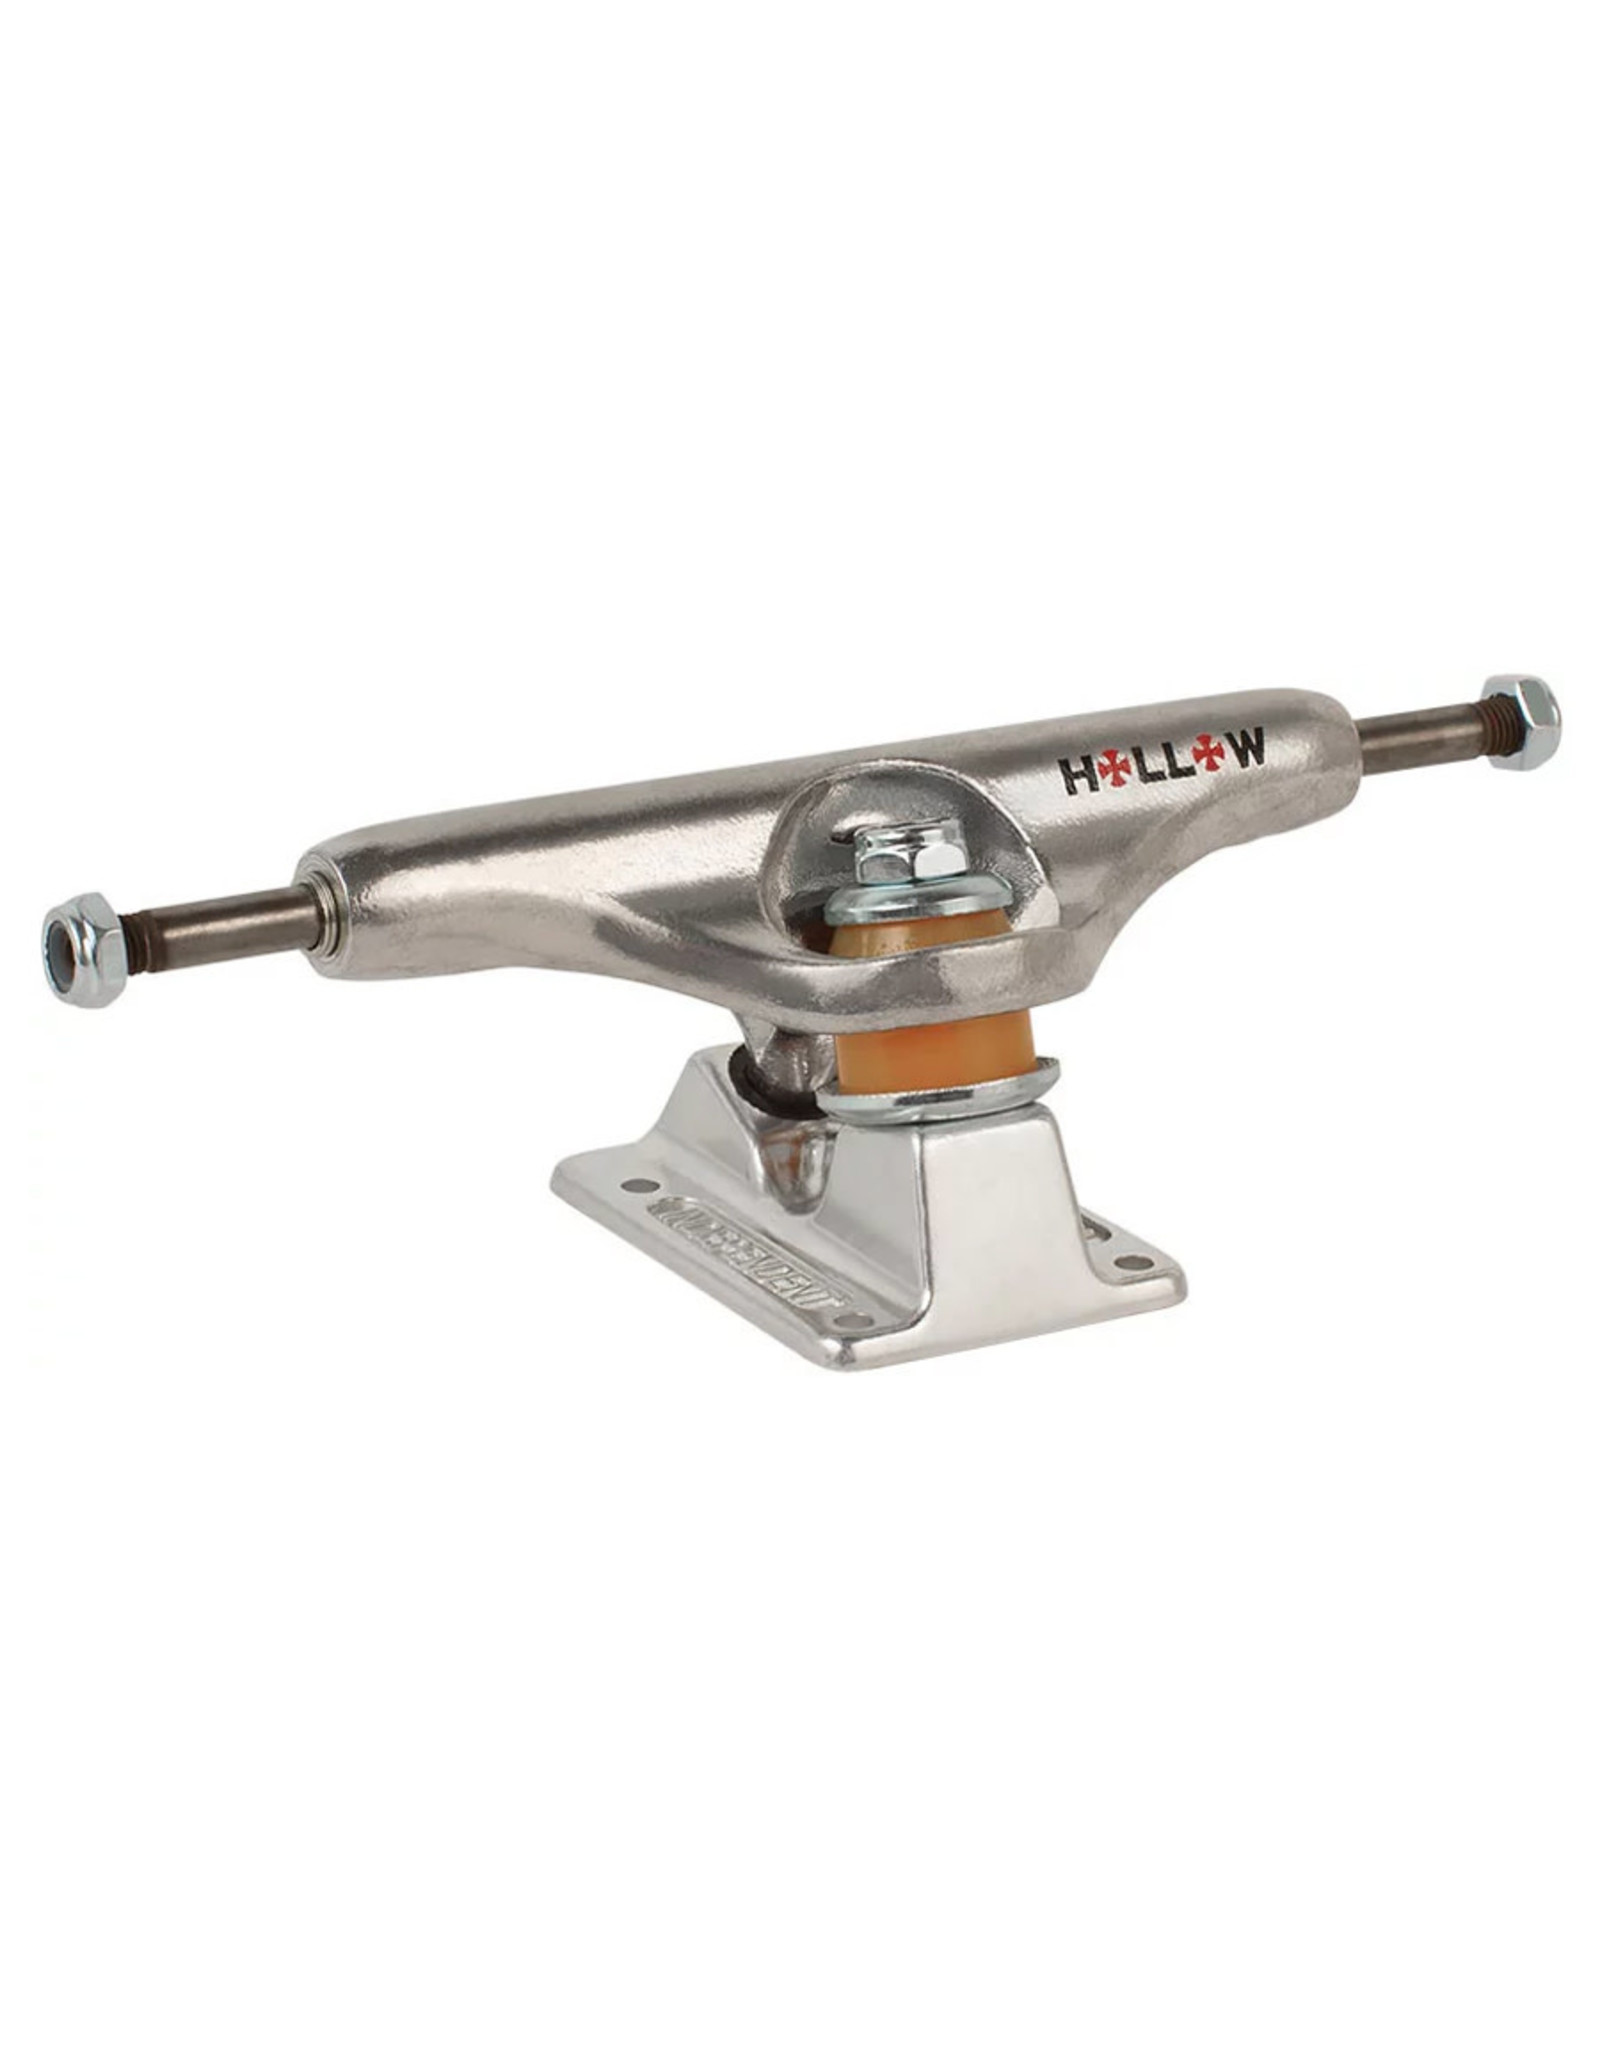 Independent Independent Trucks 139 Stage 11 Hollow Standard (Silver/Sold in Pair)